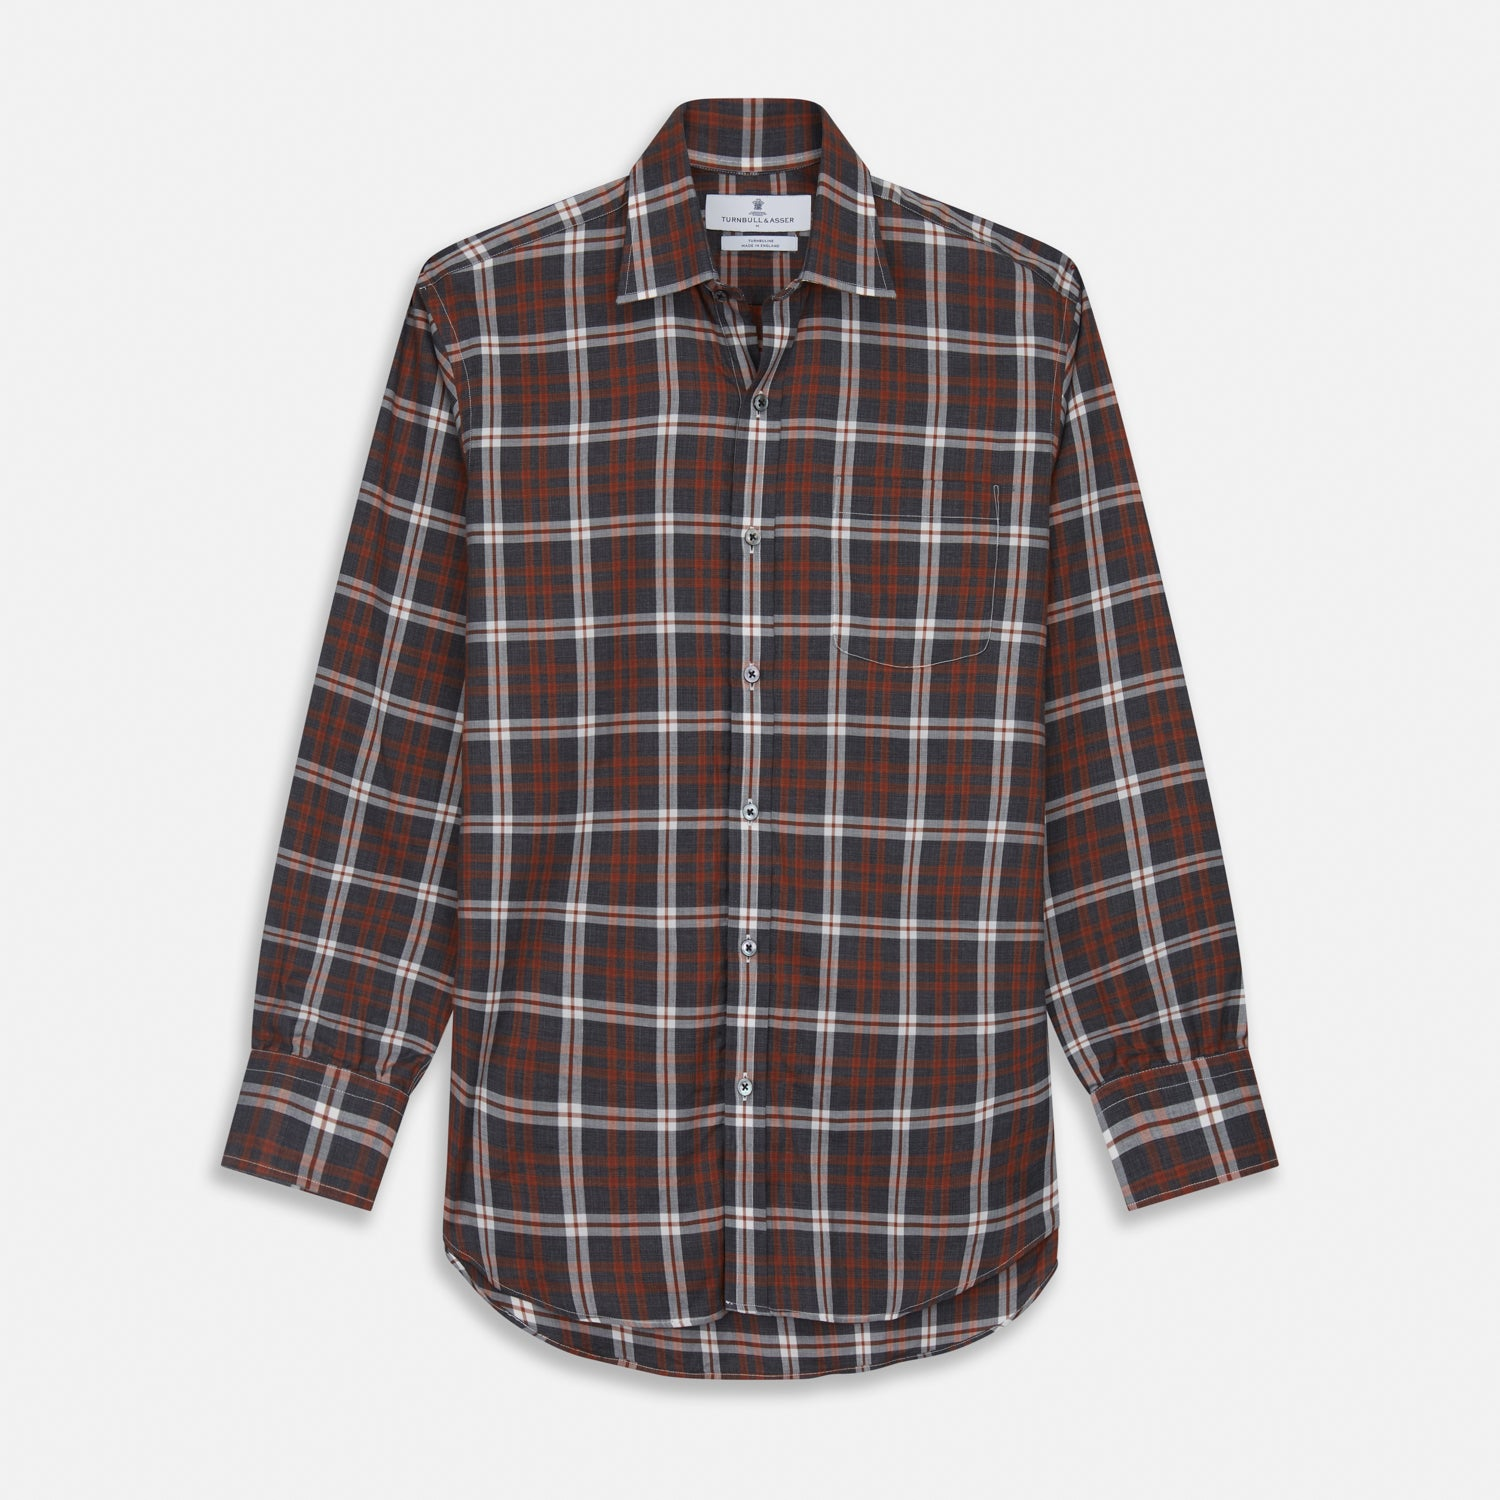 Rust Check Weekend Fit Flannel Shirt with Derby Collar and 1-Button Cuffs